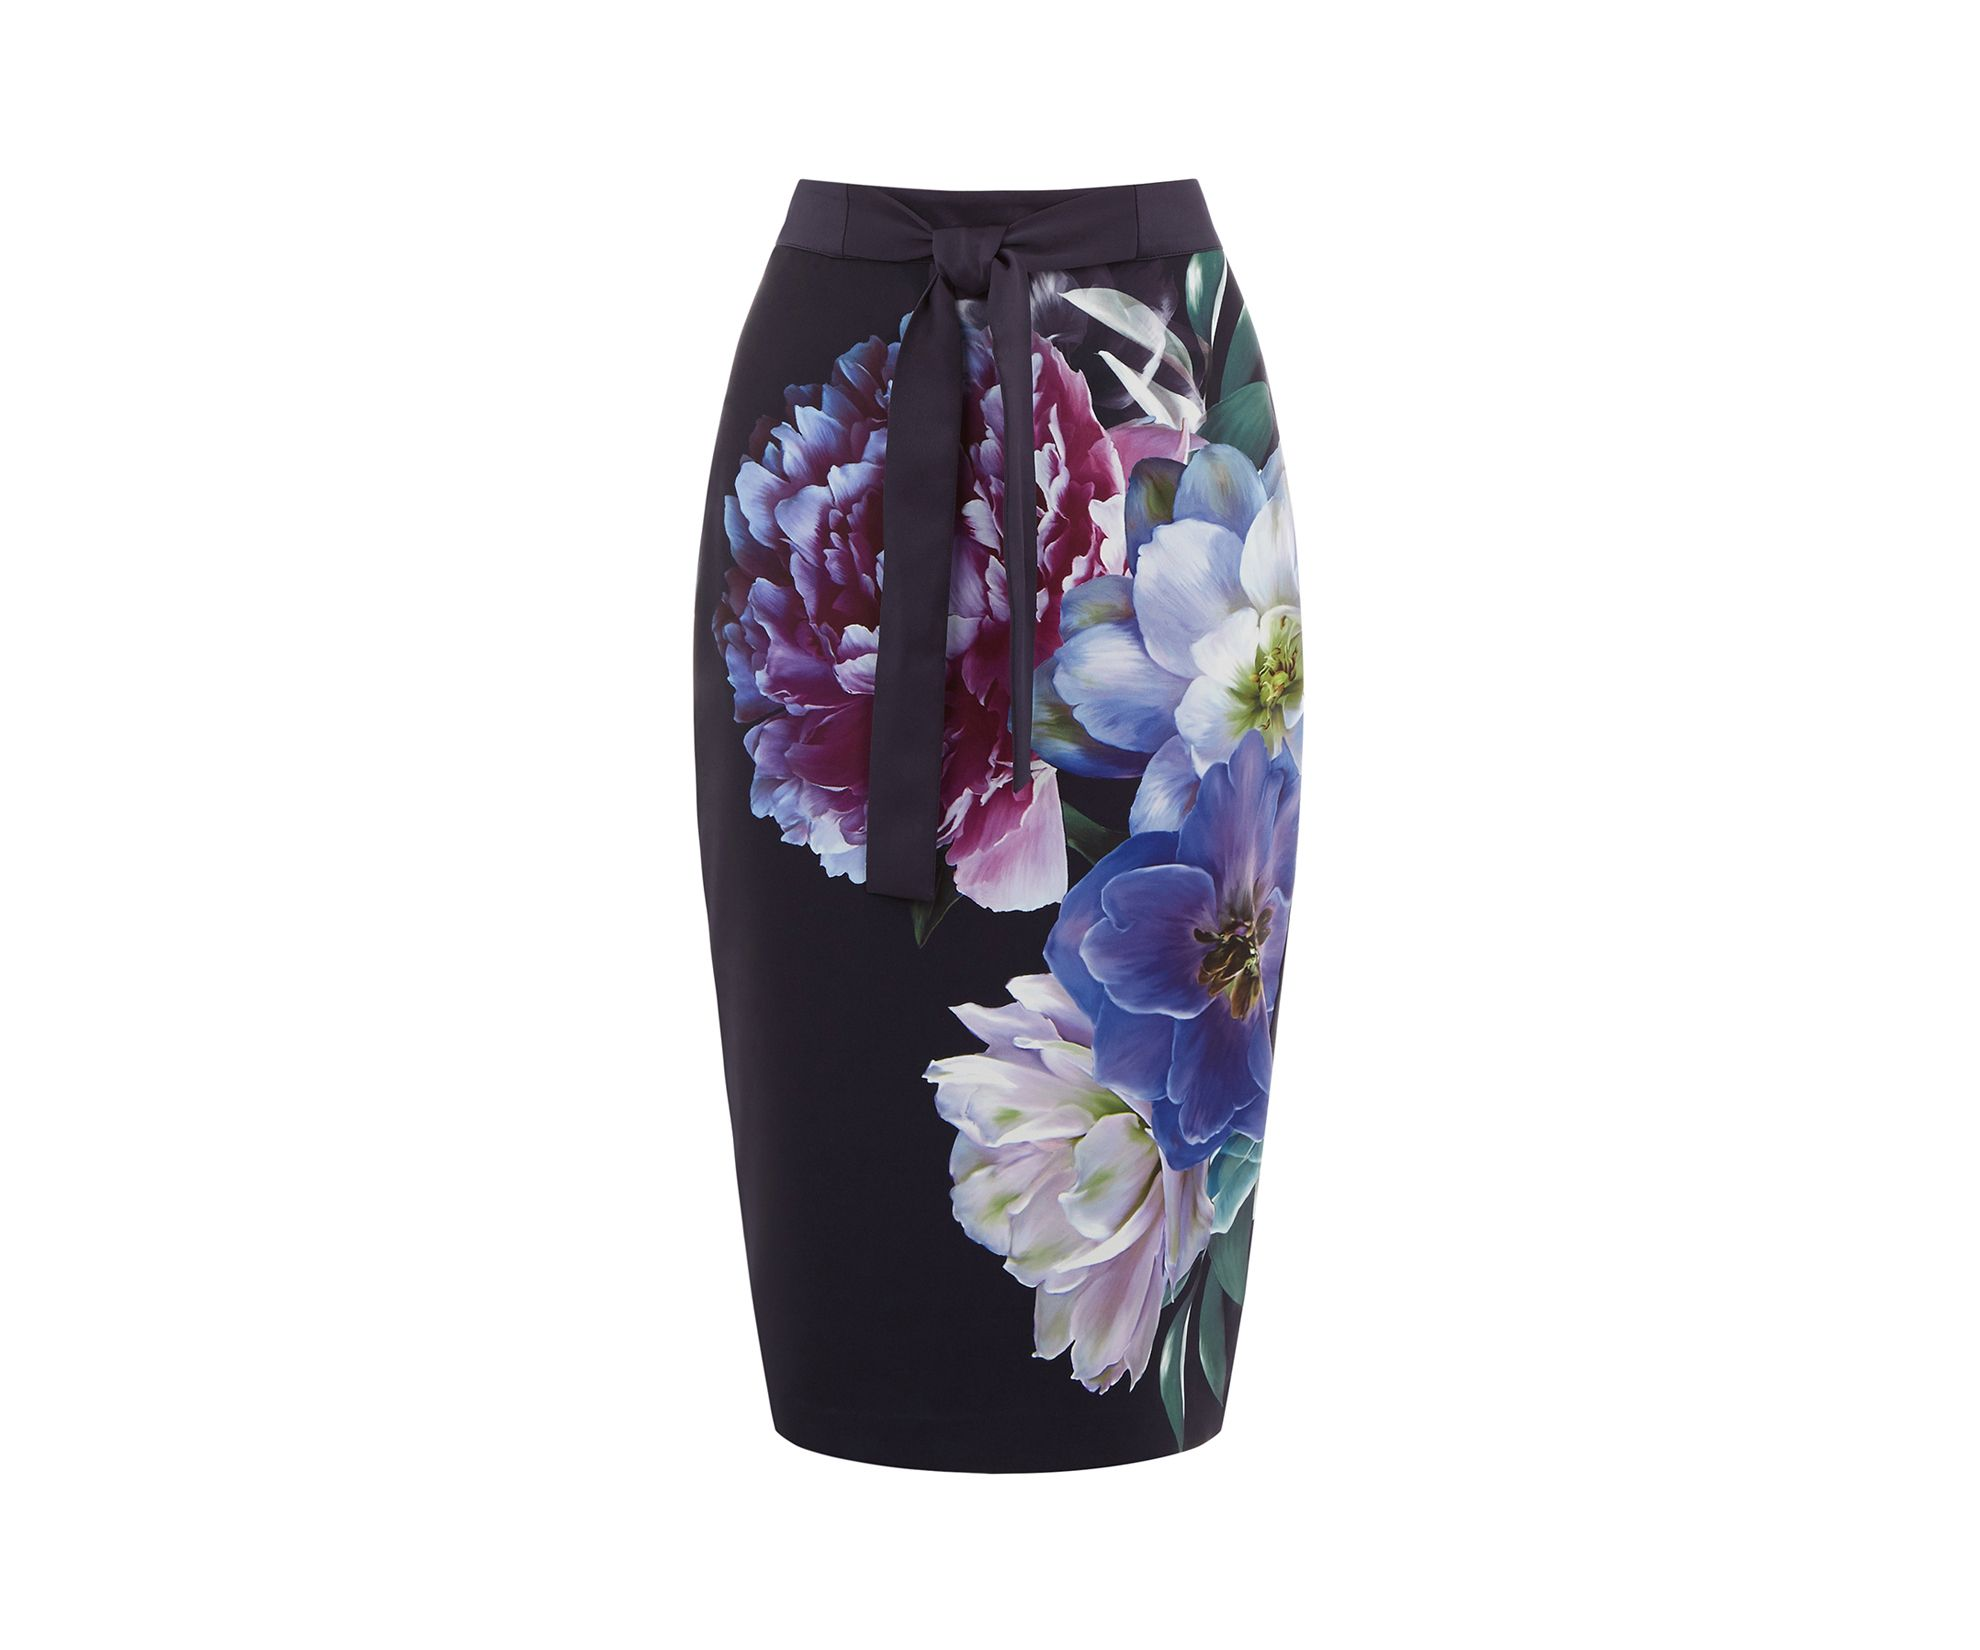 85f3a05755a7 Oasis, WILD FLORAL PENCIL SKIRT Multi   Ascot Planning! in 2019 ...